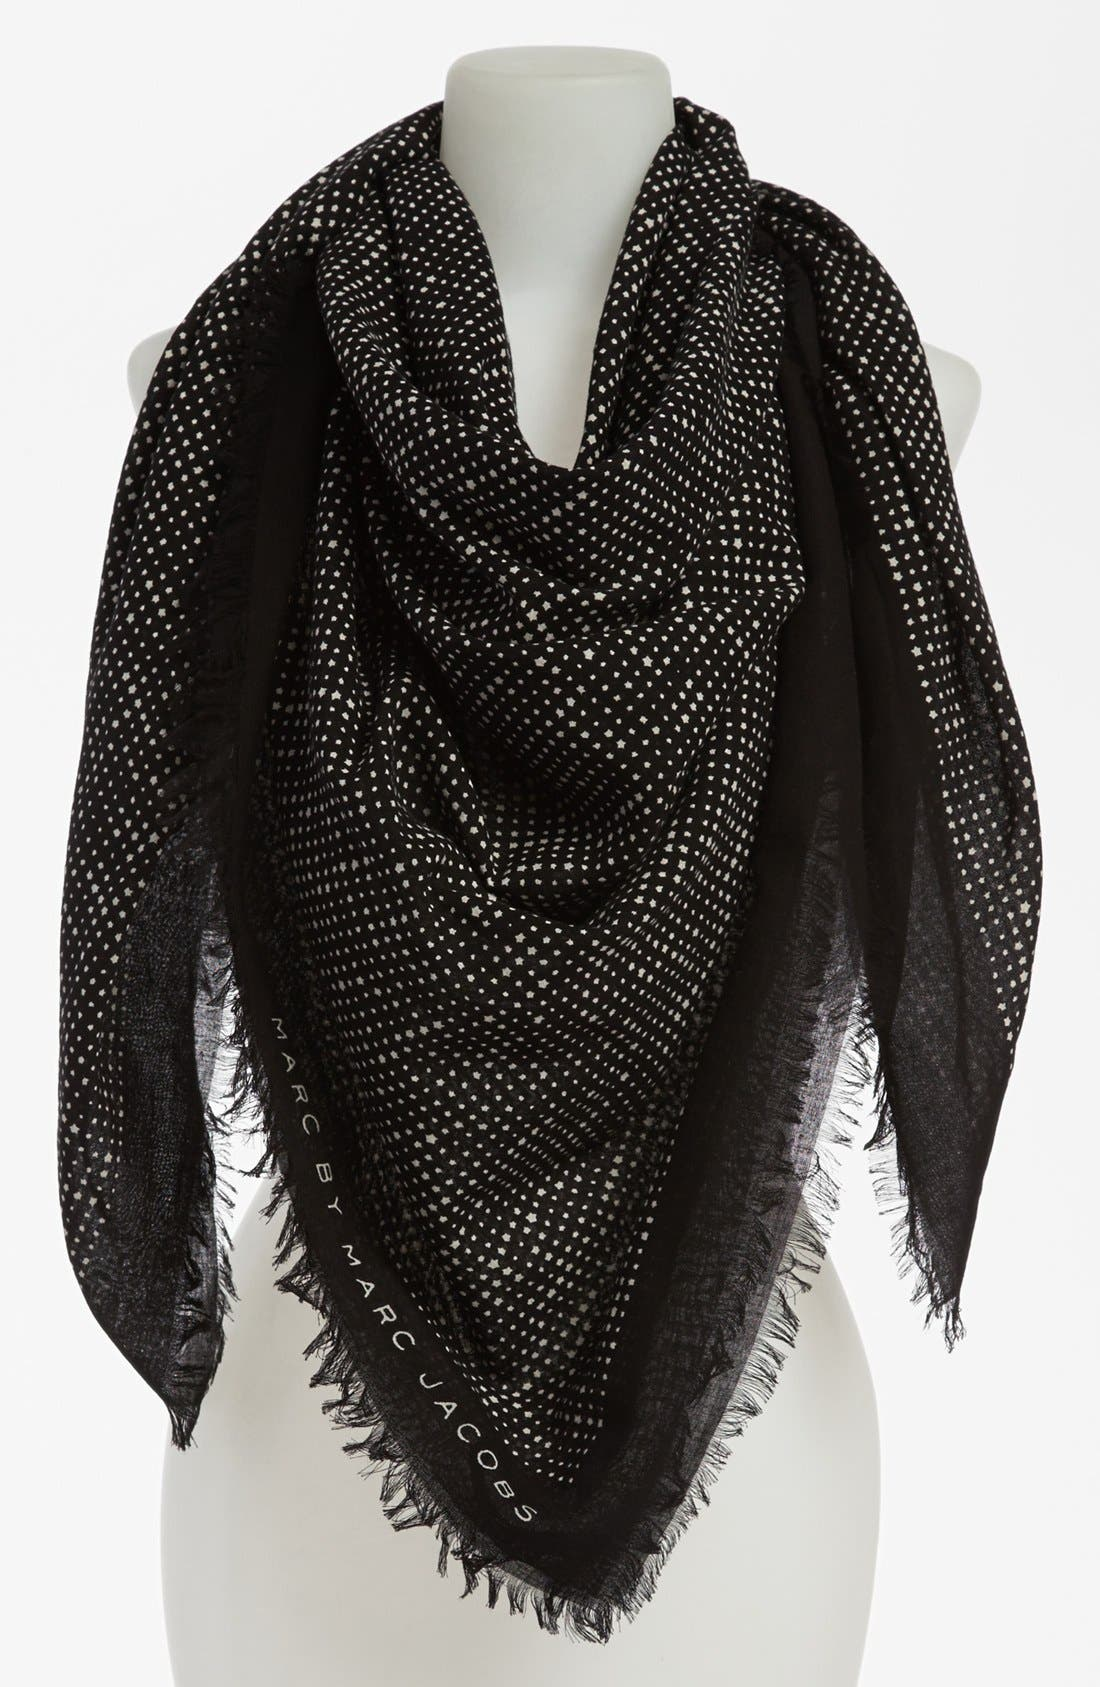 Main Image - MARC BY MARC JACOBS 'Reluctant Stars' Cotton Scarf